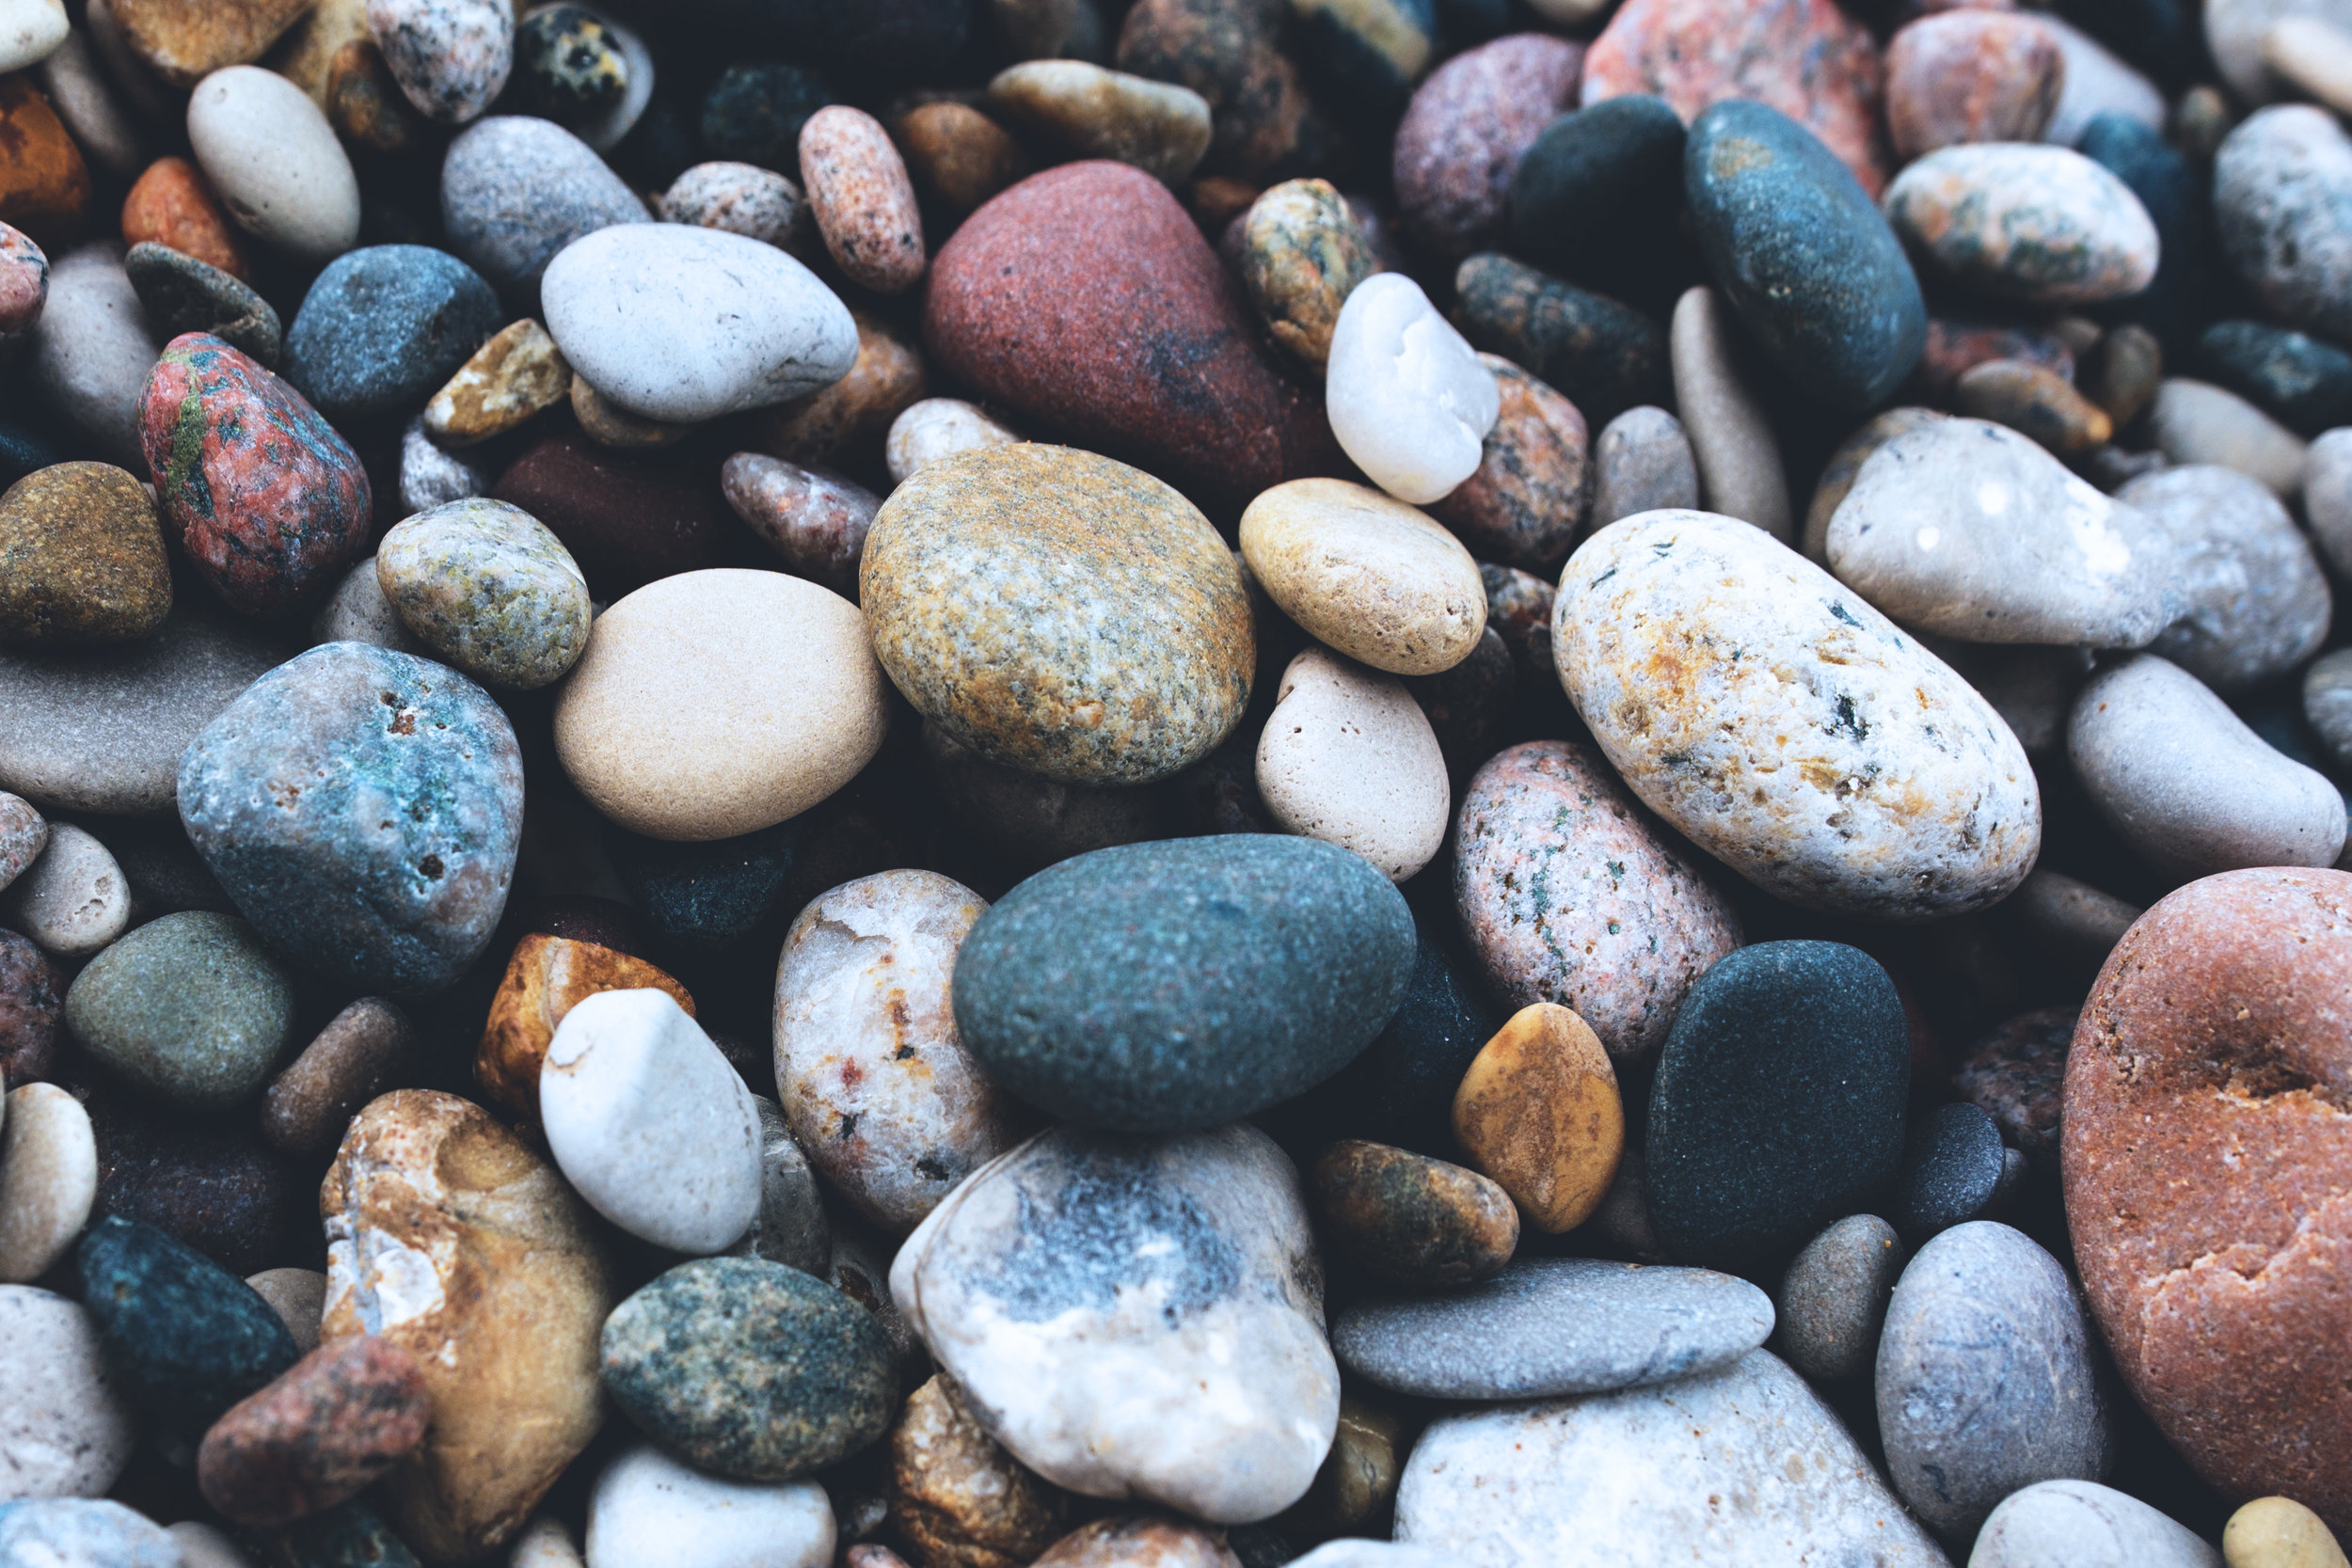 I offer creative approaches such as inviting the client to select pebbles to represent people in their lives, feelings they are struggling with, or different options in a difficult decision, for example, to achieve a depth of understanding. Most clients find this strange at first, but are surprised at how much insight it creates.